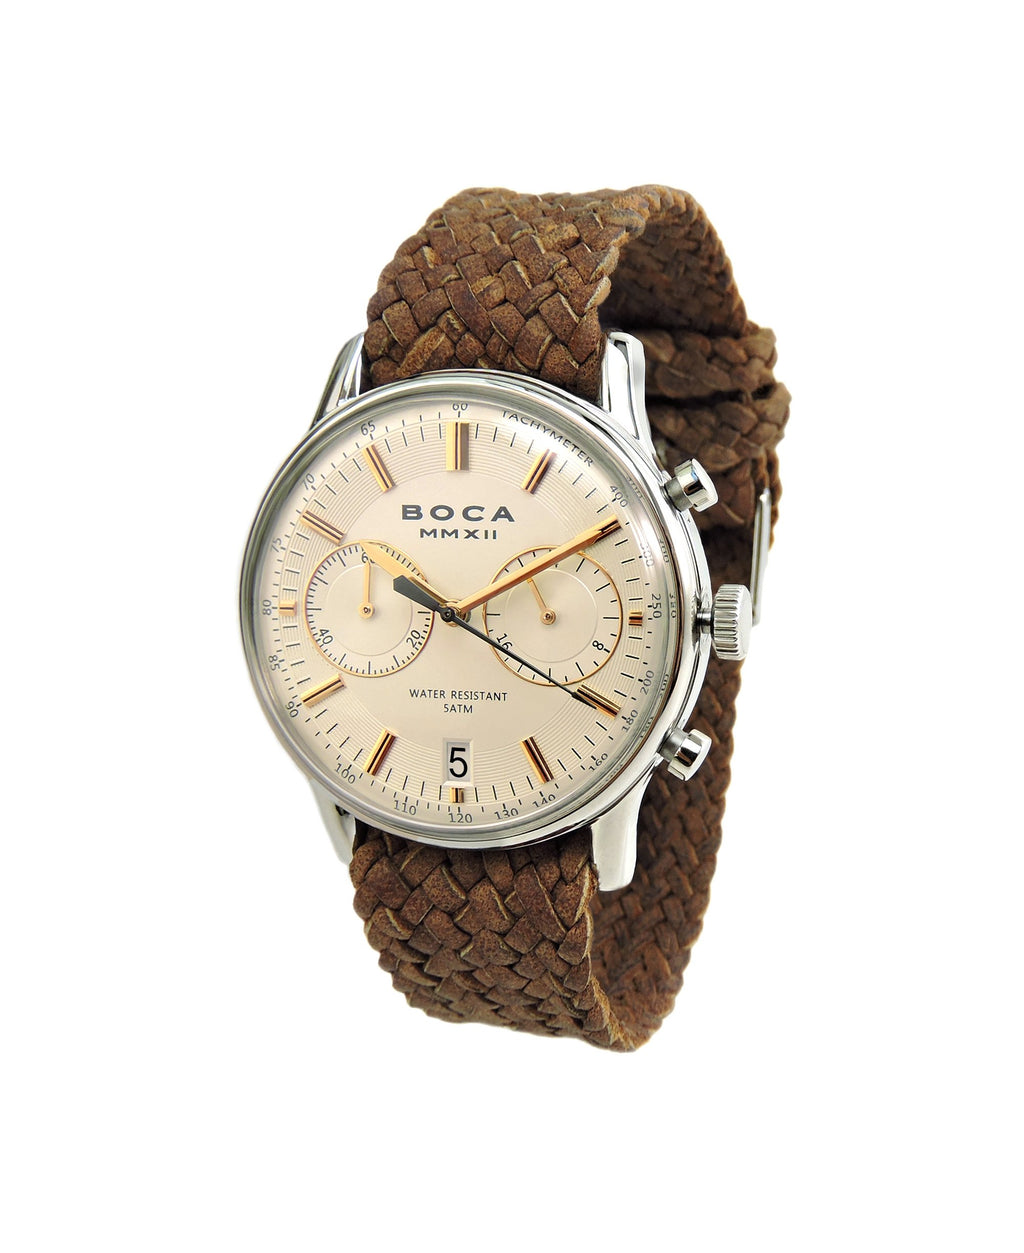 Metropole Chrono Beige with Bright Tobacco Wristband - BOCA MMXII - Official website